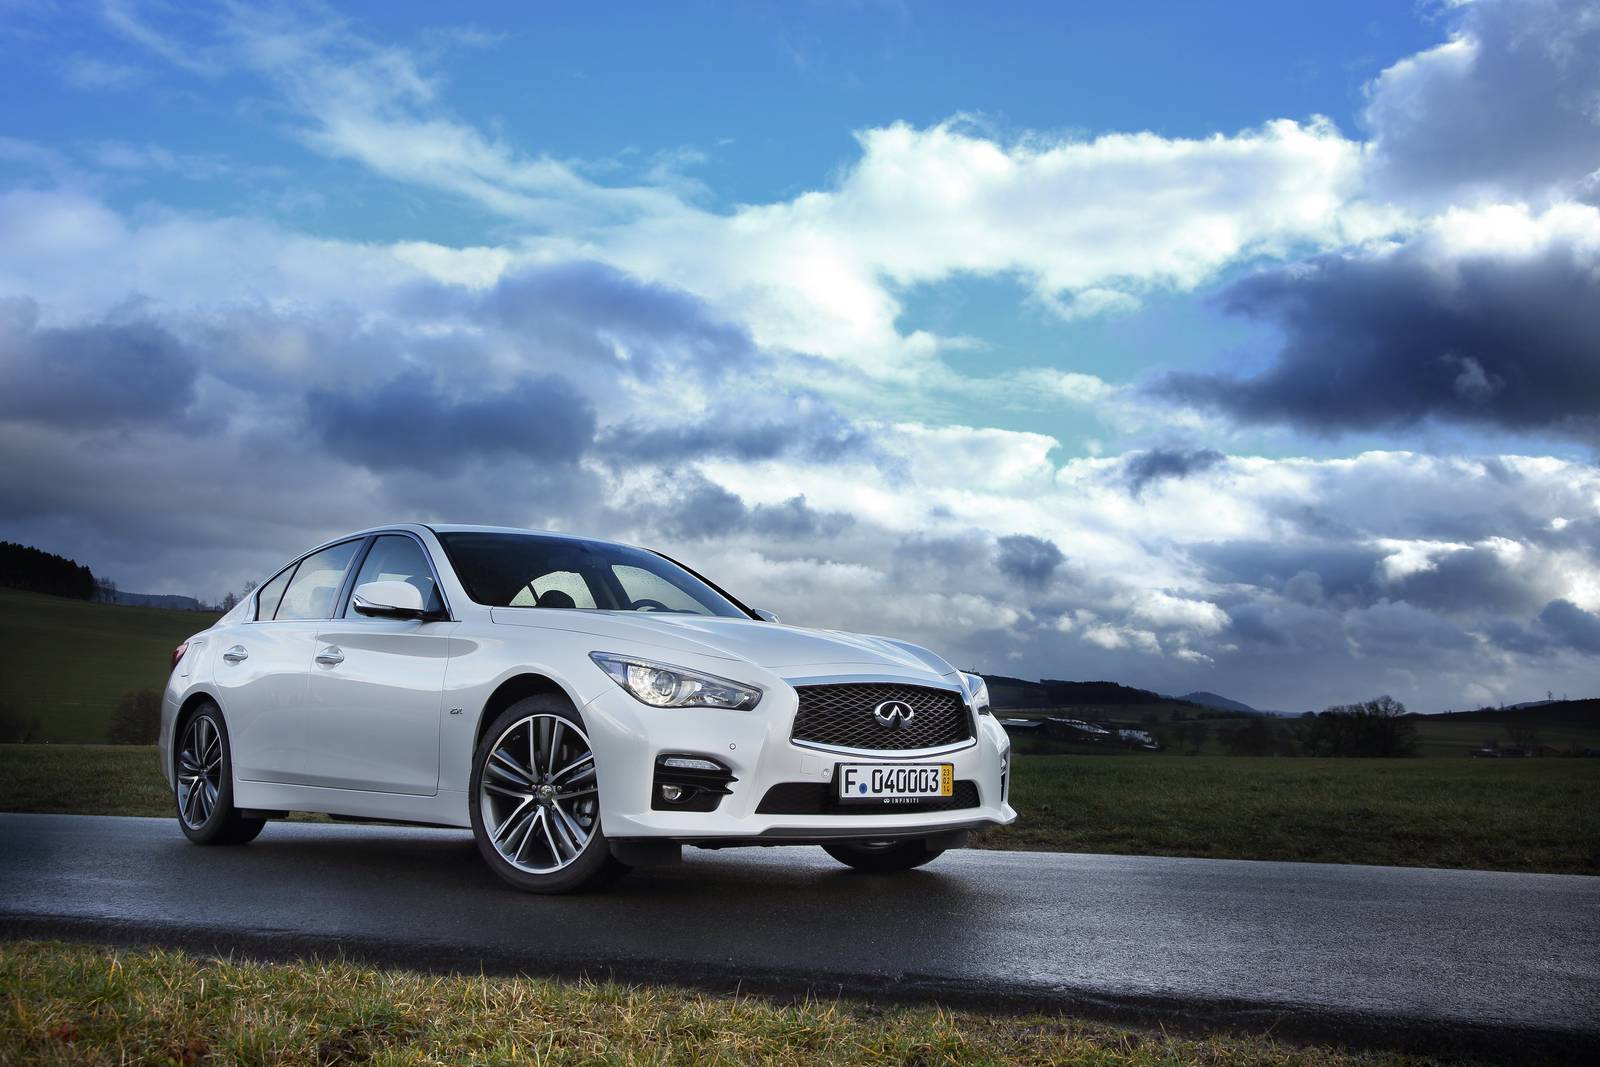 infiniti q50 eau rouge features 560 hp twin turbo gtspirit. Black Bedroom Furniture Sets. Home Design Ideas